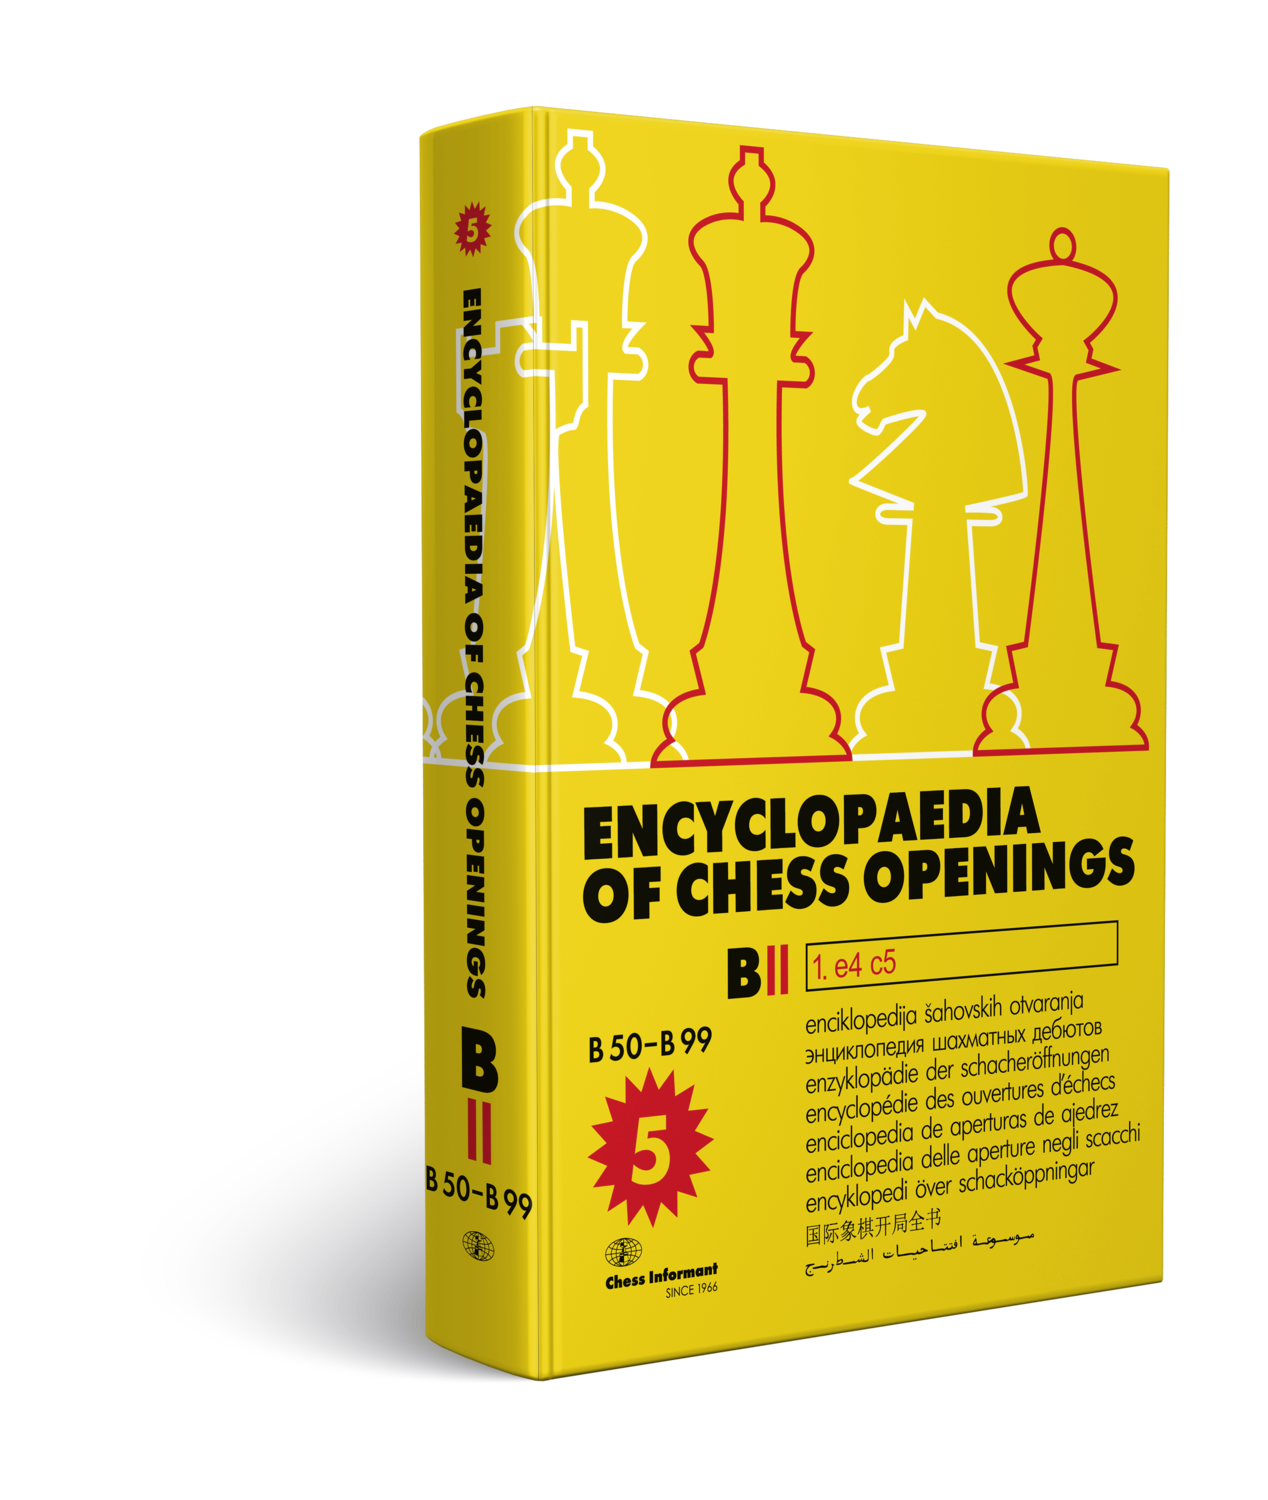 Encyclopaedia Of Chess Openings, Volume B - Part 2    ***DAMAGED***